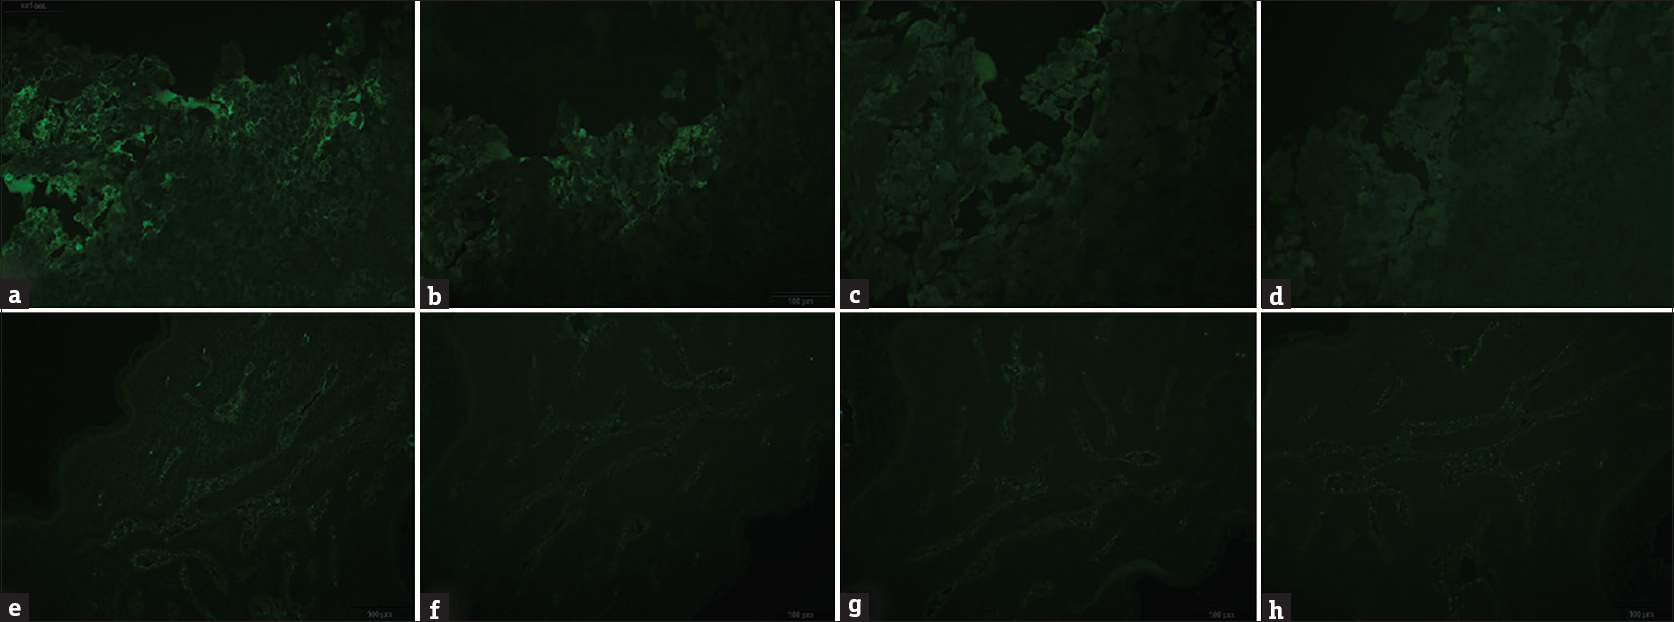 Figure 3: (a-d) Linear deposits of IgG and IgA in the intercellular spaces of acantholytic cells; (e-h) Granular deposits of IgG, IgA, IgM, and C3 in dermal blood vessel walls (fluorescein isothiocyanate, ×100)